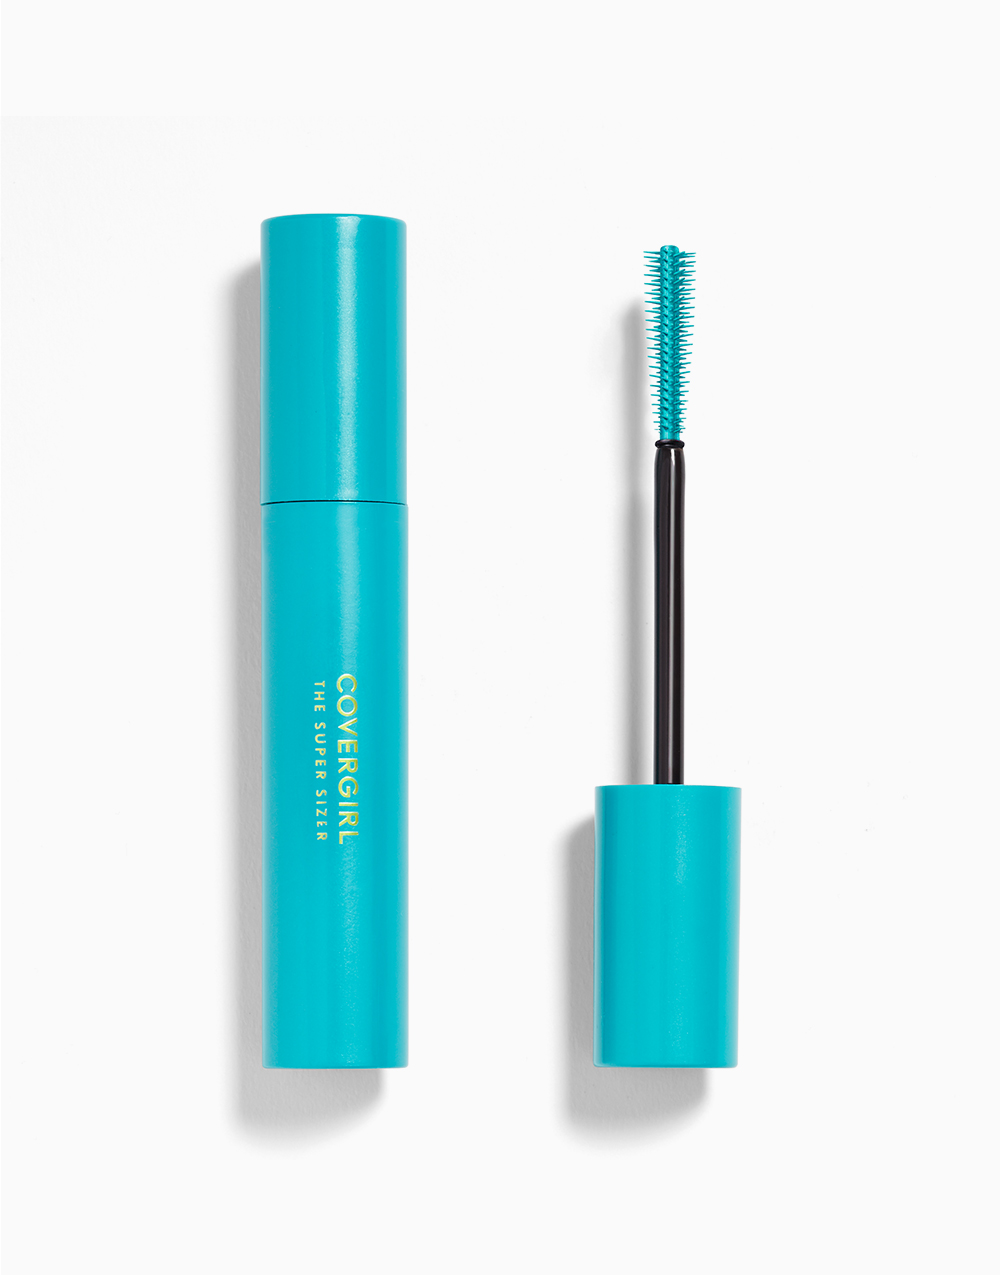 The Super Sizer By LashBlast Mascara by CoverGirl |